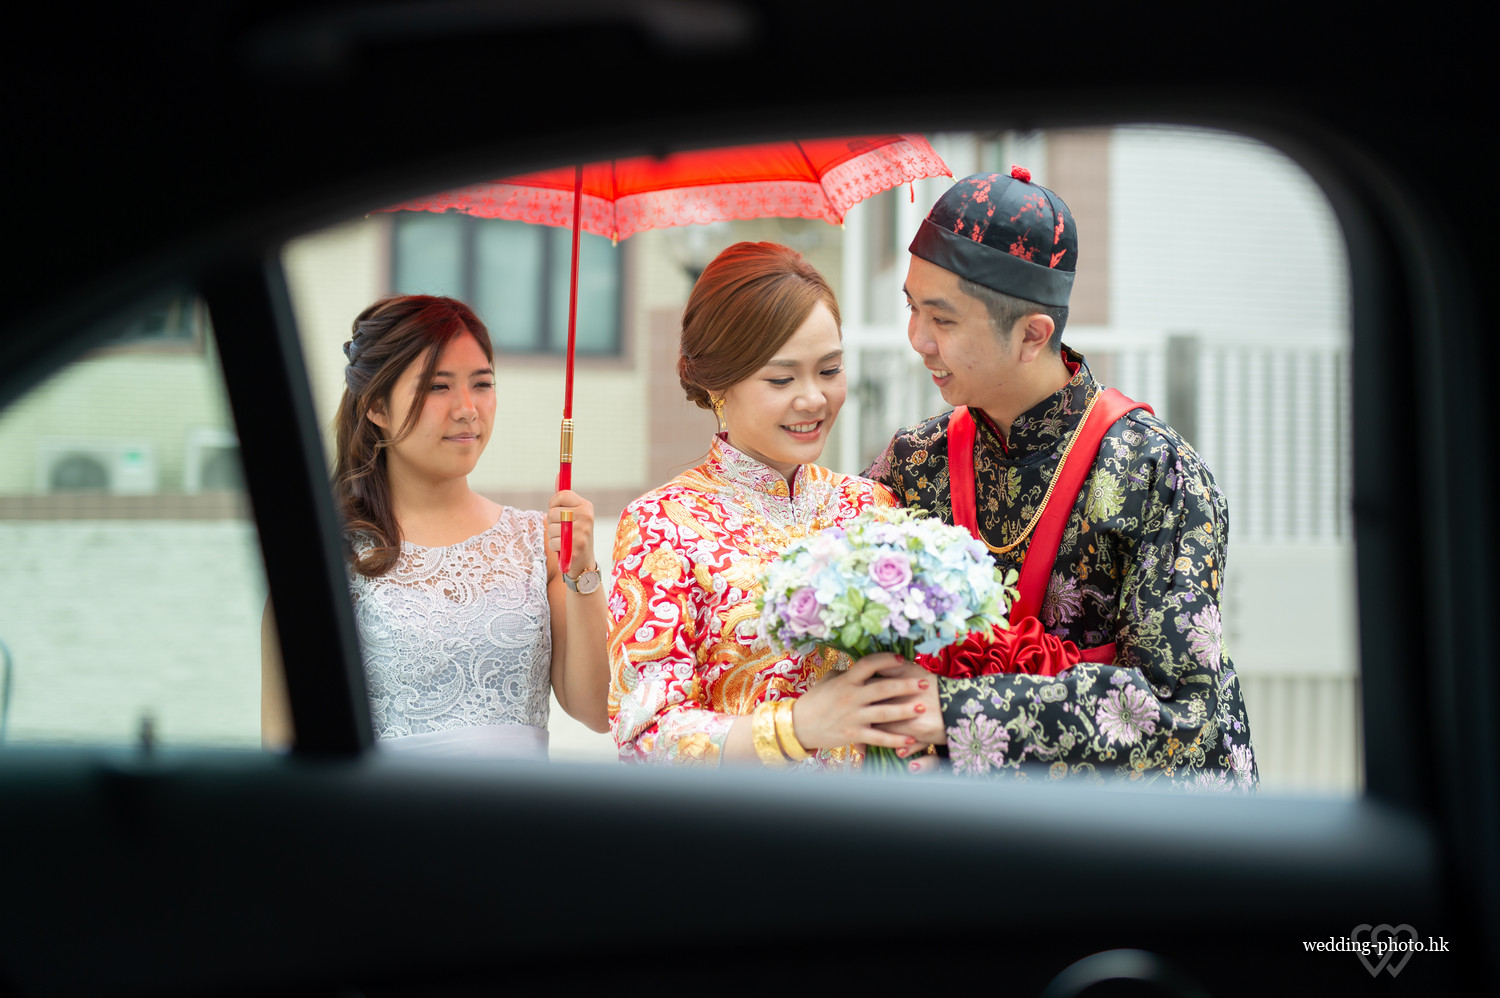 婚禮攝影 Wedding Photography